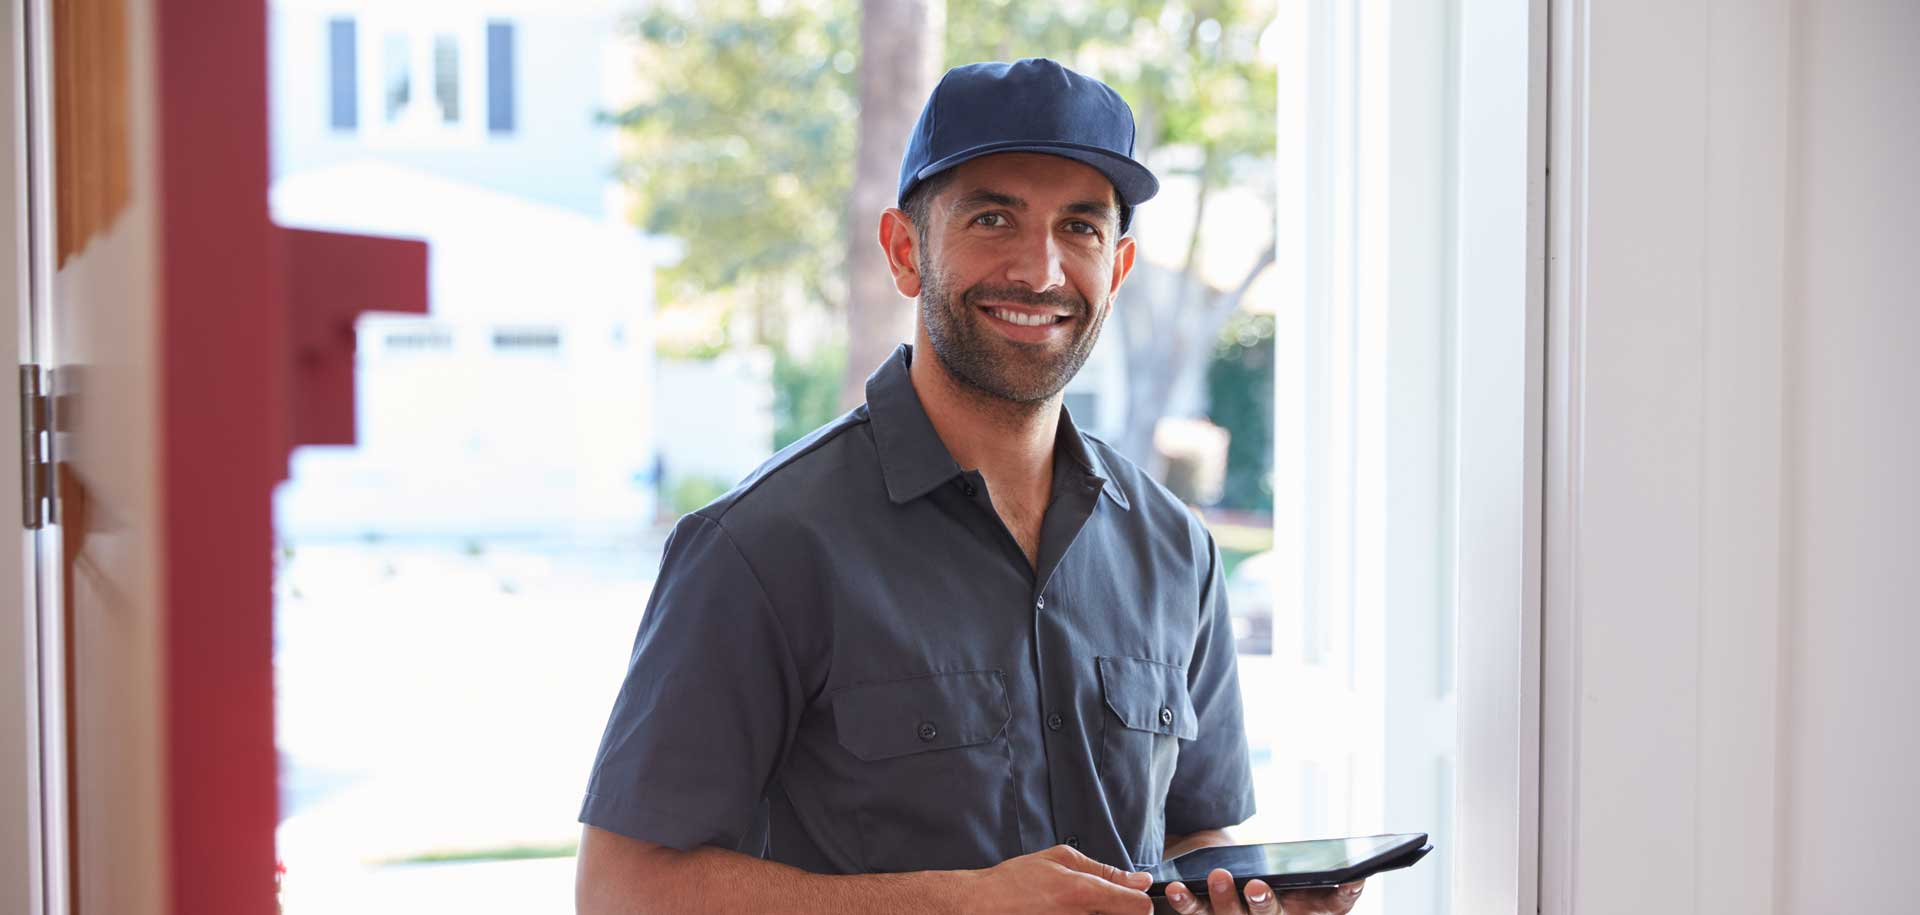 Man smiling with tablet in hand, blue cap on